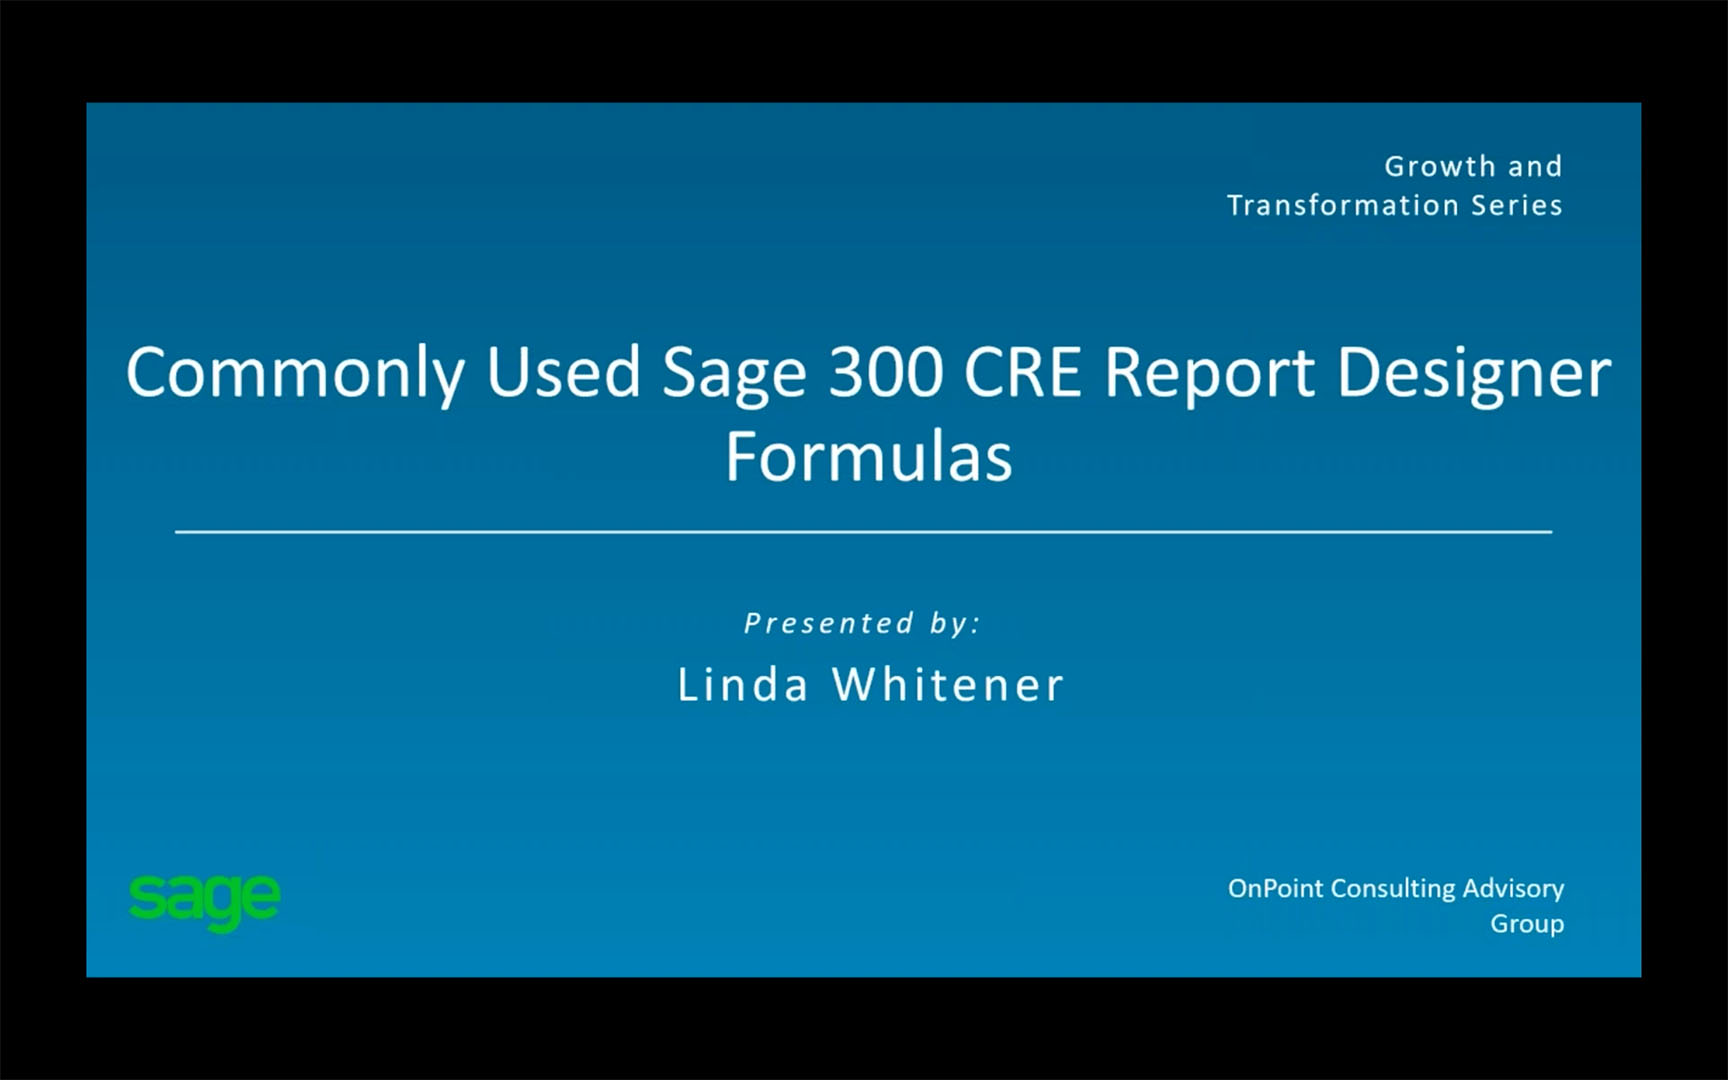 Commonly used Sage 300 CRE Report Designer Formulas